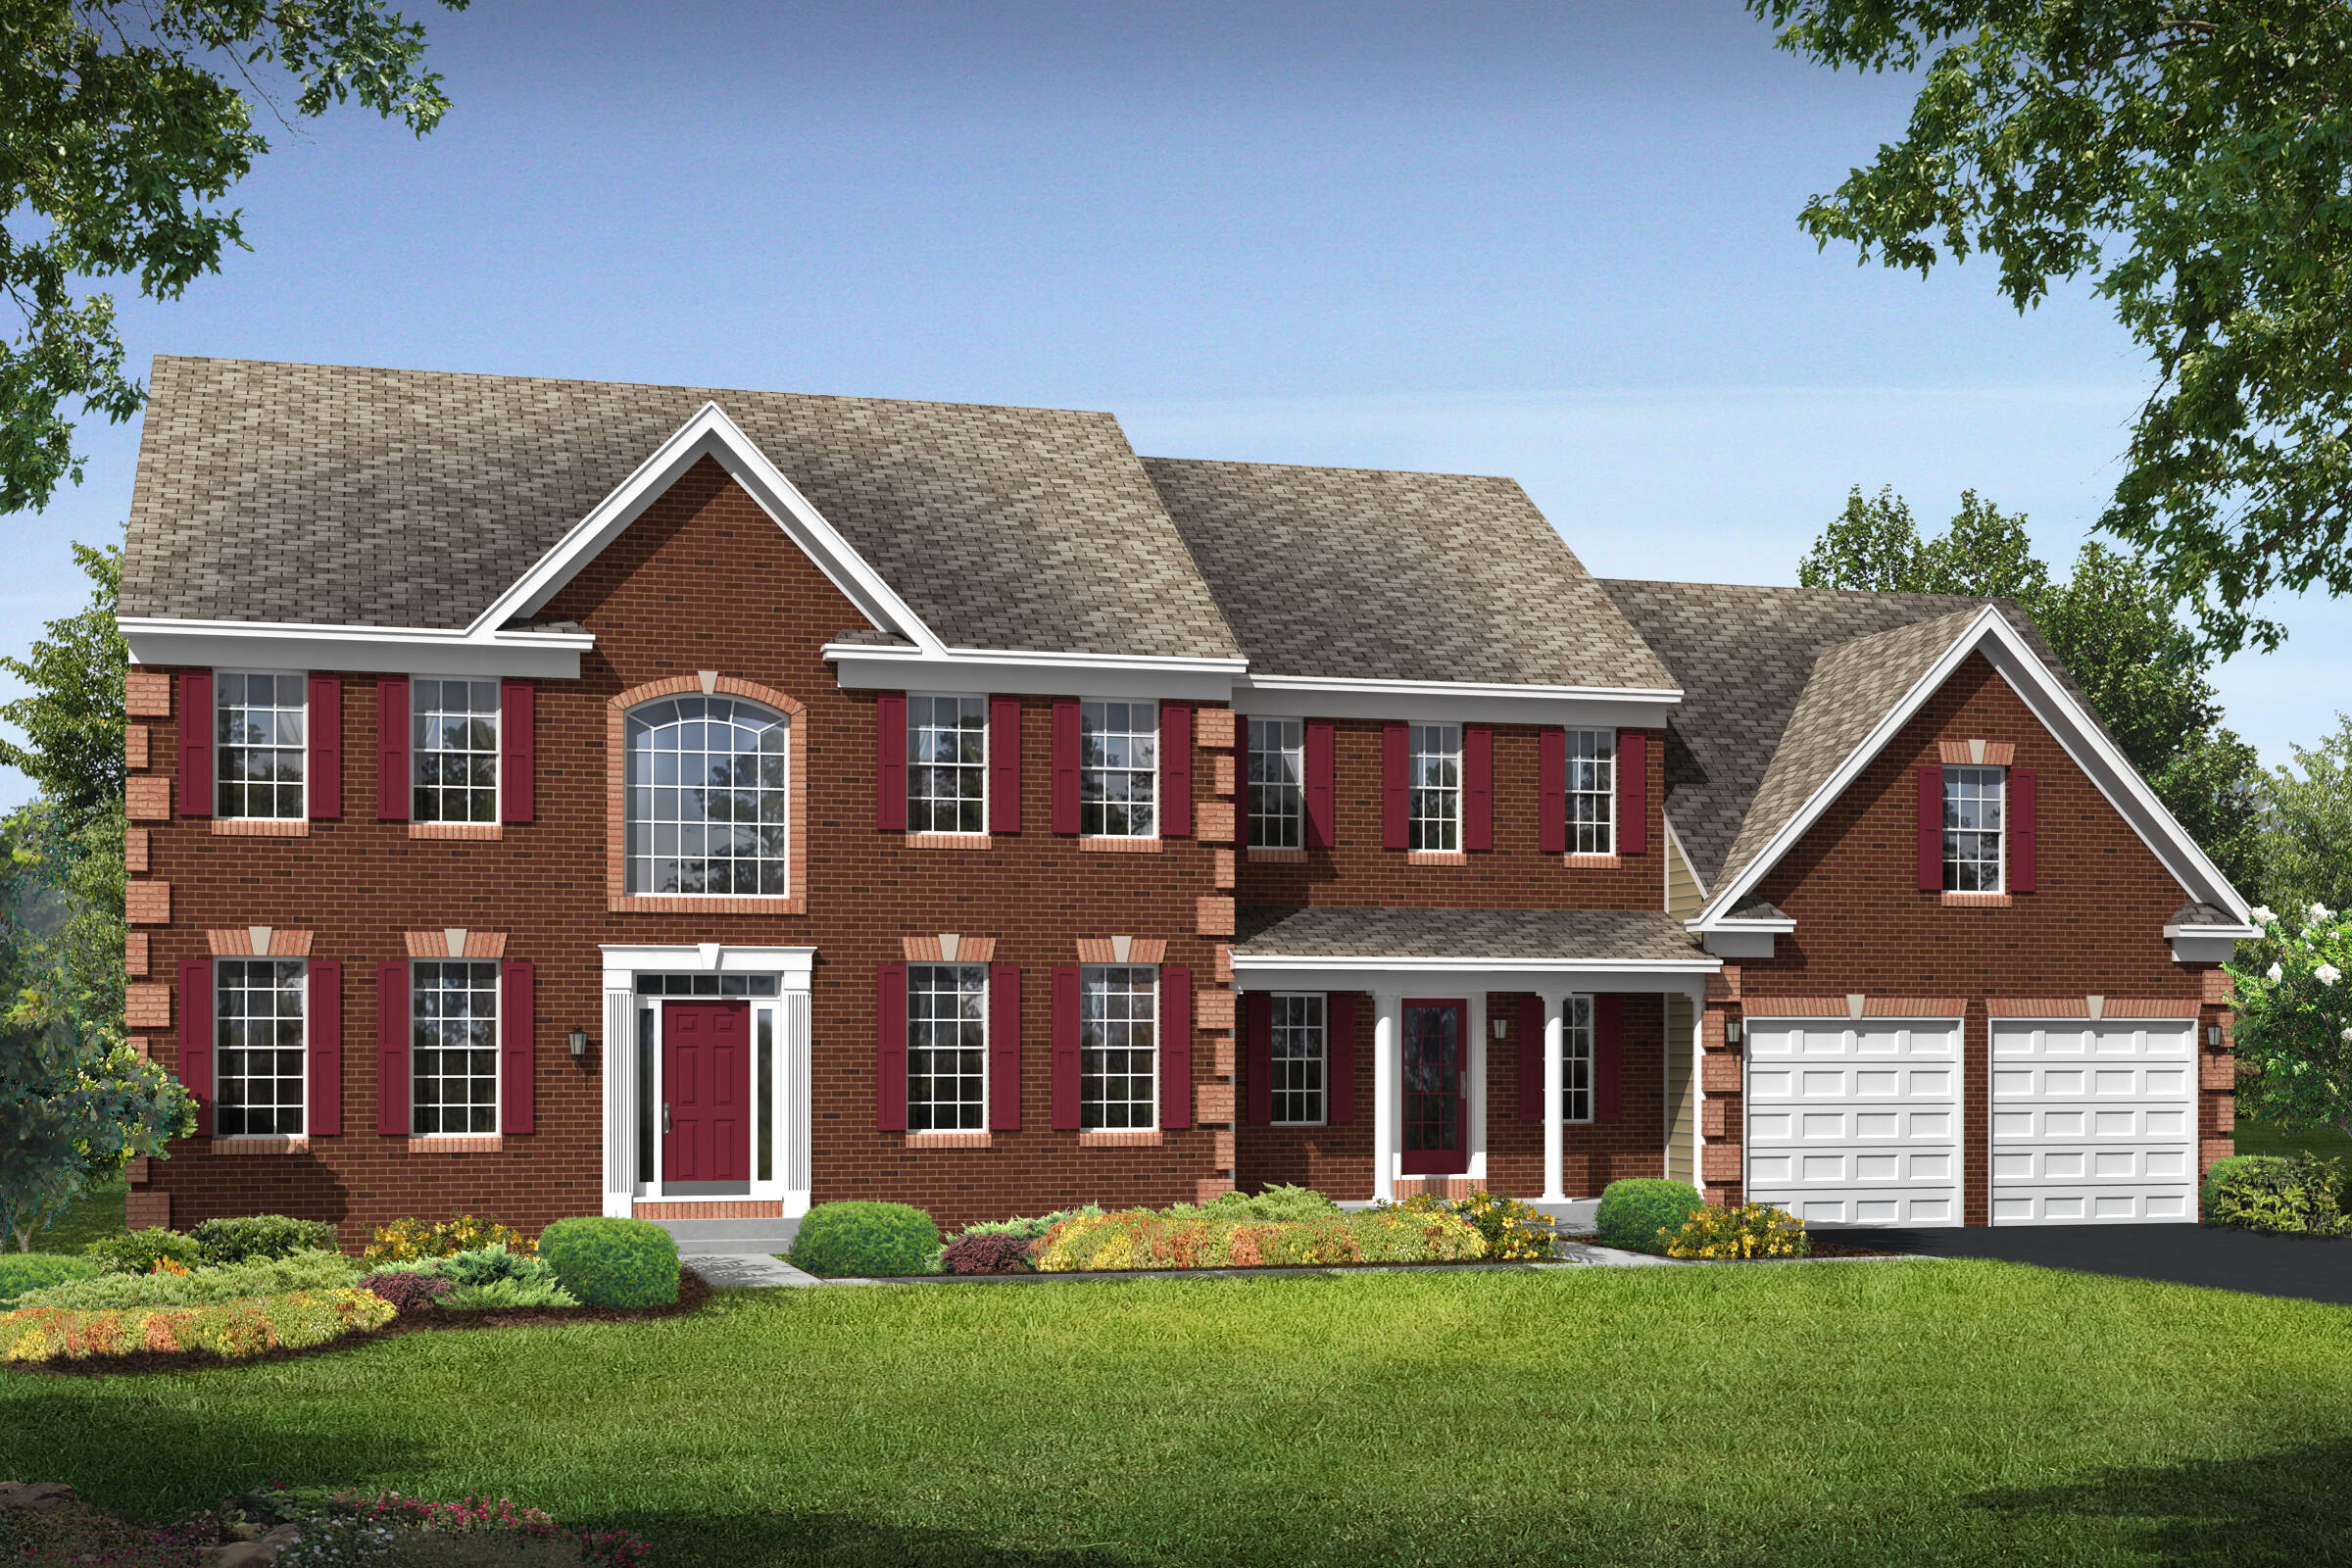 wisconsin traditional new homes at reserves at leeland station in virginia